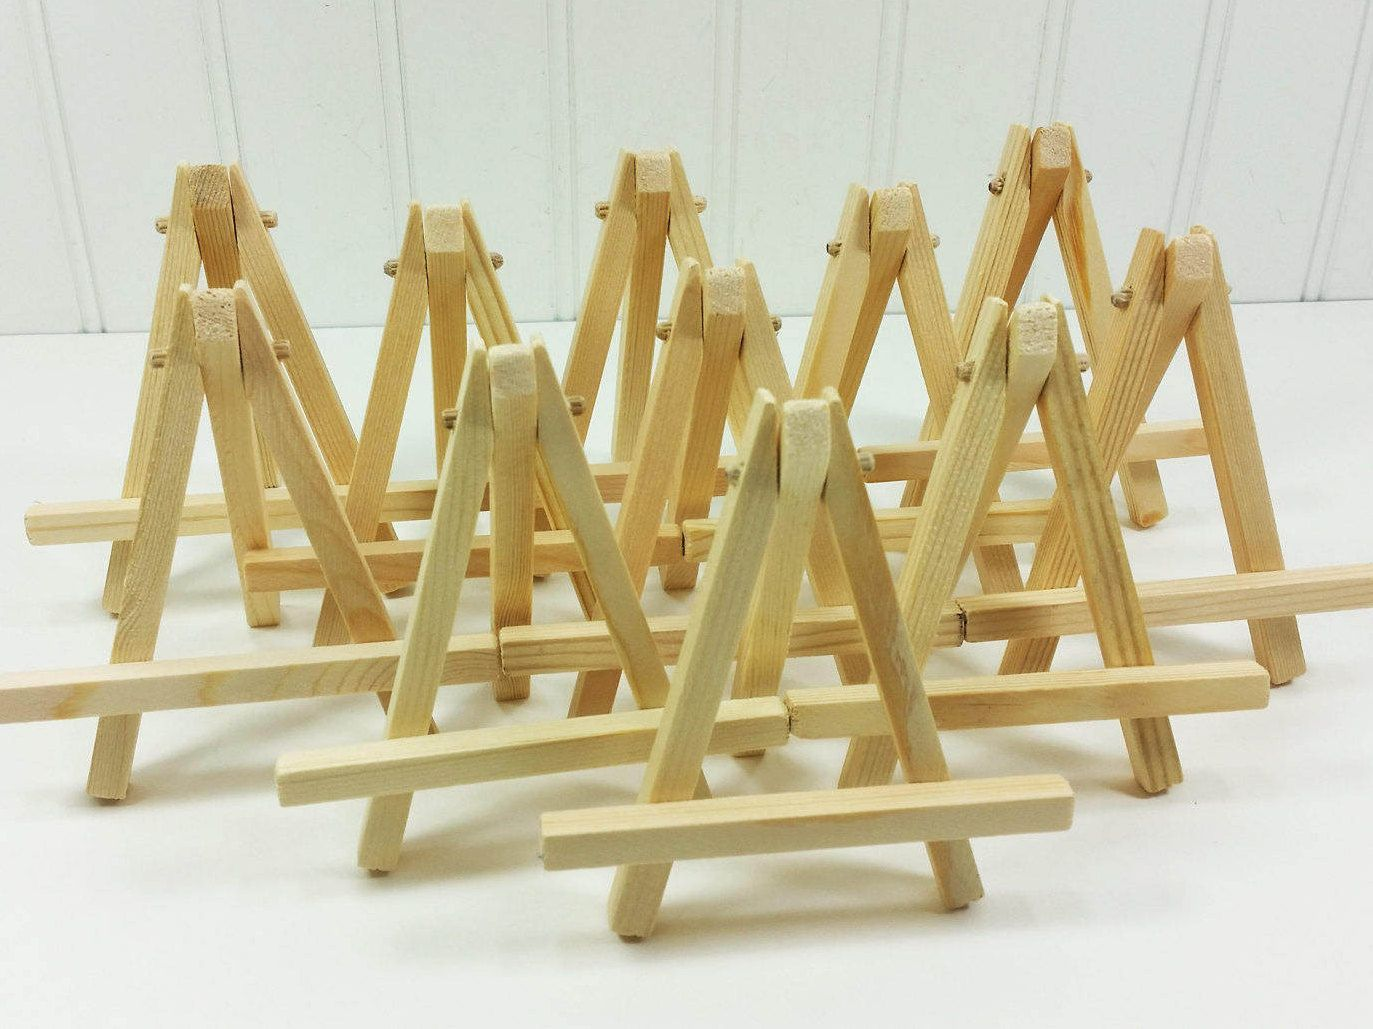 10 Small Wood Easels Natural Tabletop For Miniature Art Place Cards Table Number By Natureswalkstudio On Etsy